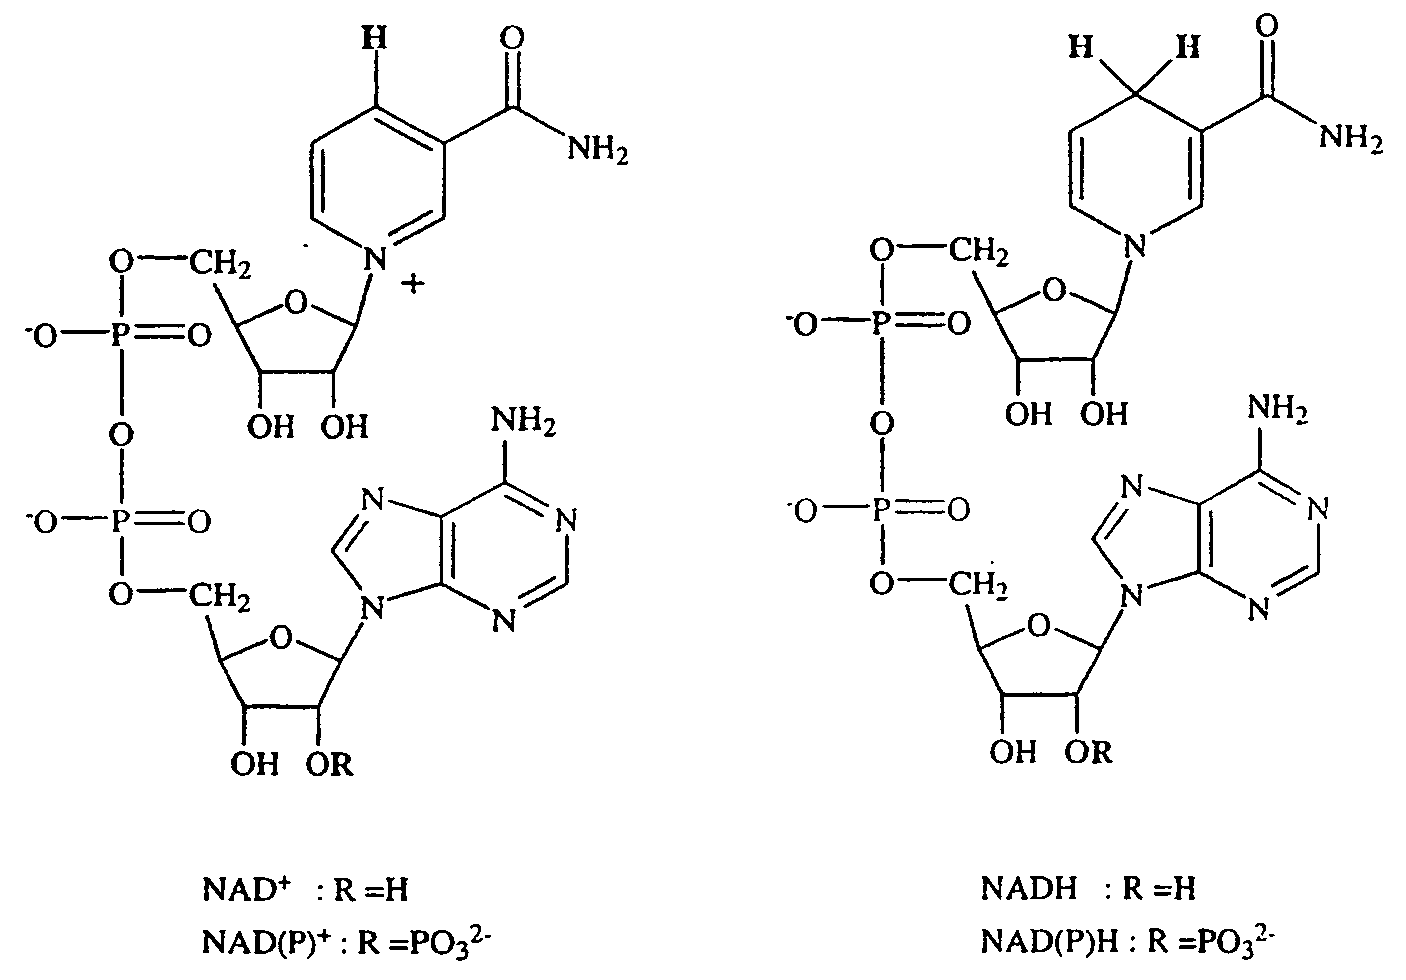 nadh  nadph oxidoreductases  oxidoreductases  nadh  nadph